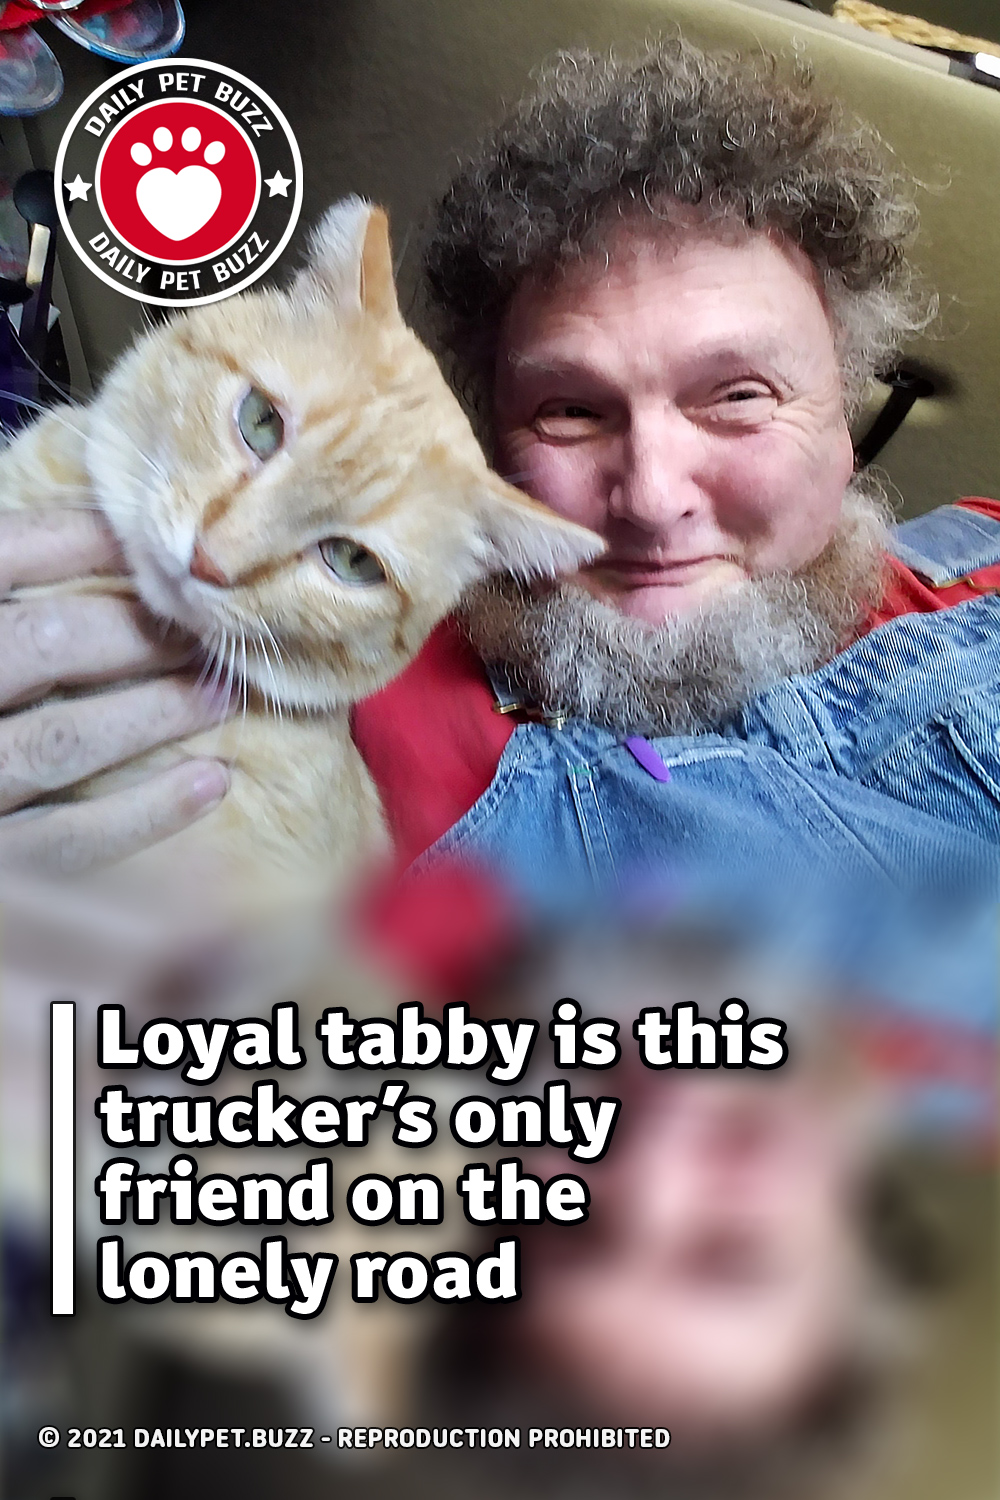 Loyal tabby is this trucker's only friend on the lonely road